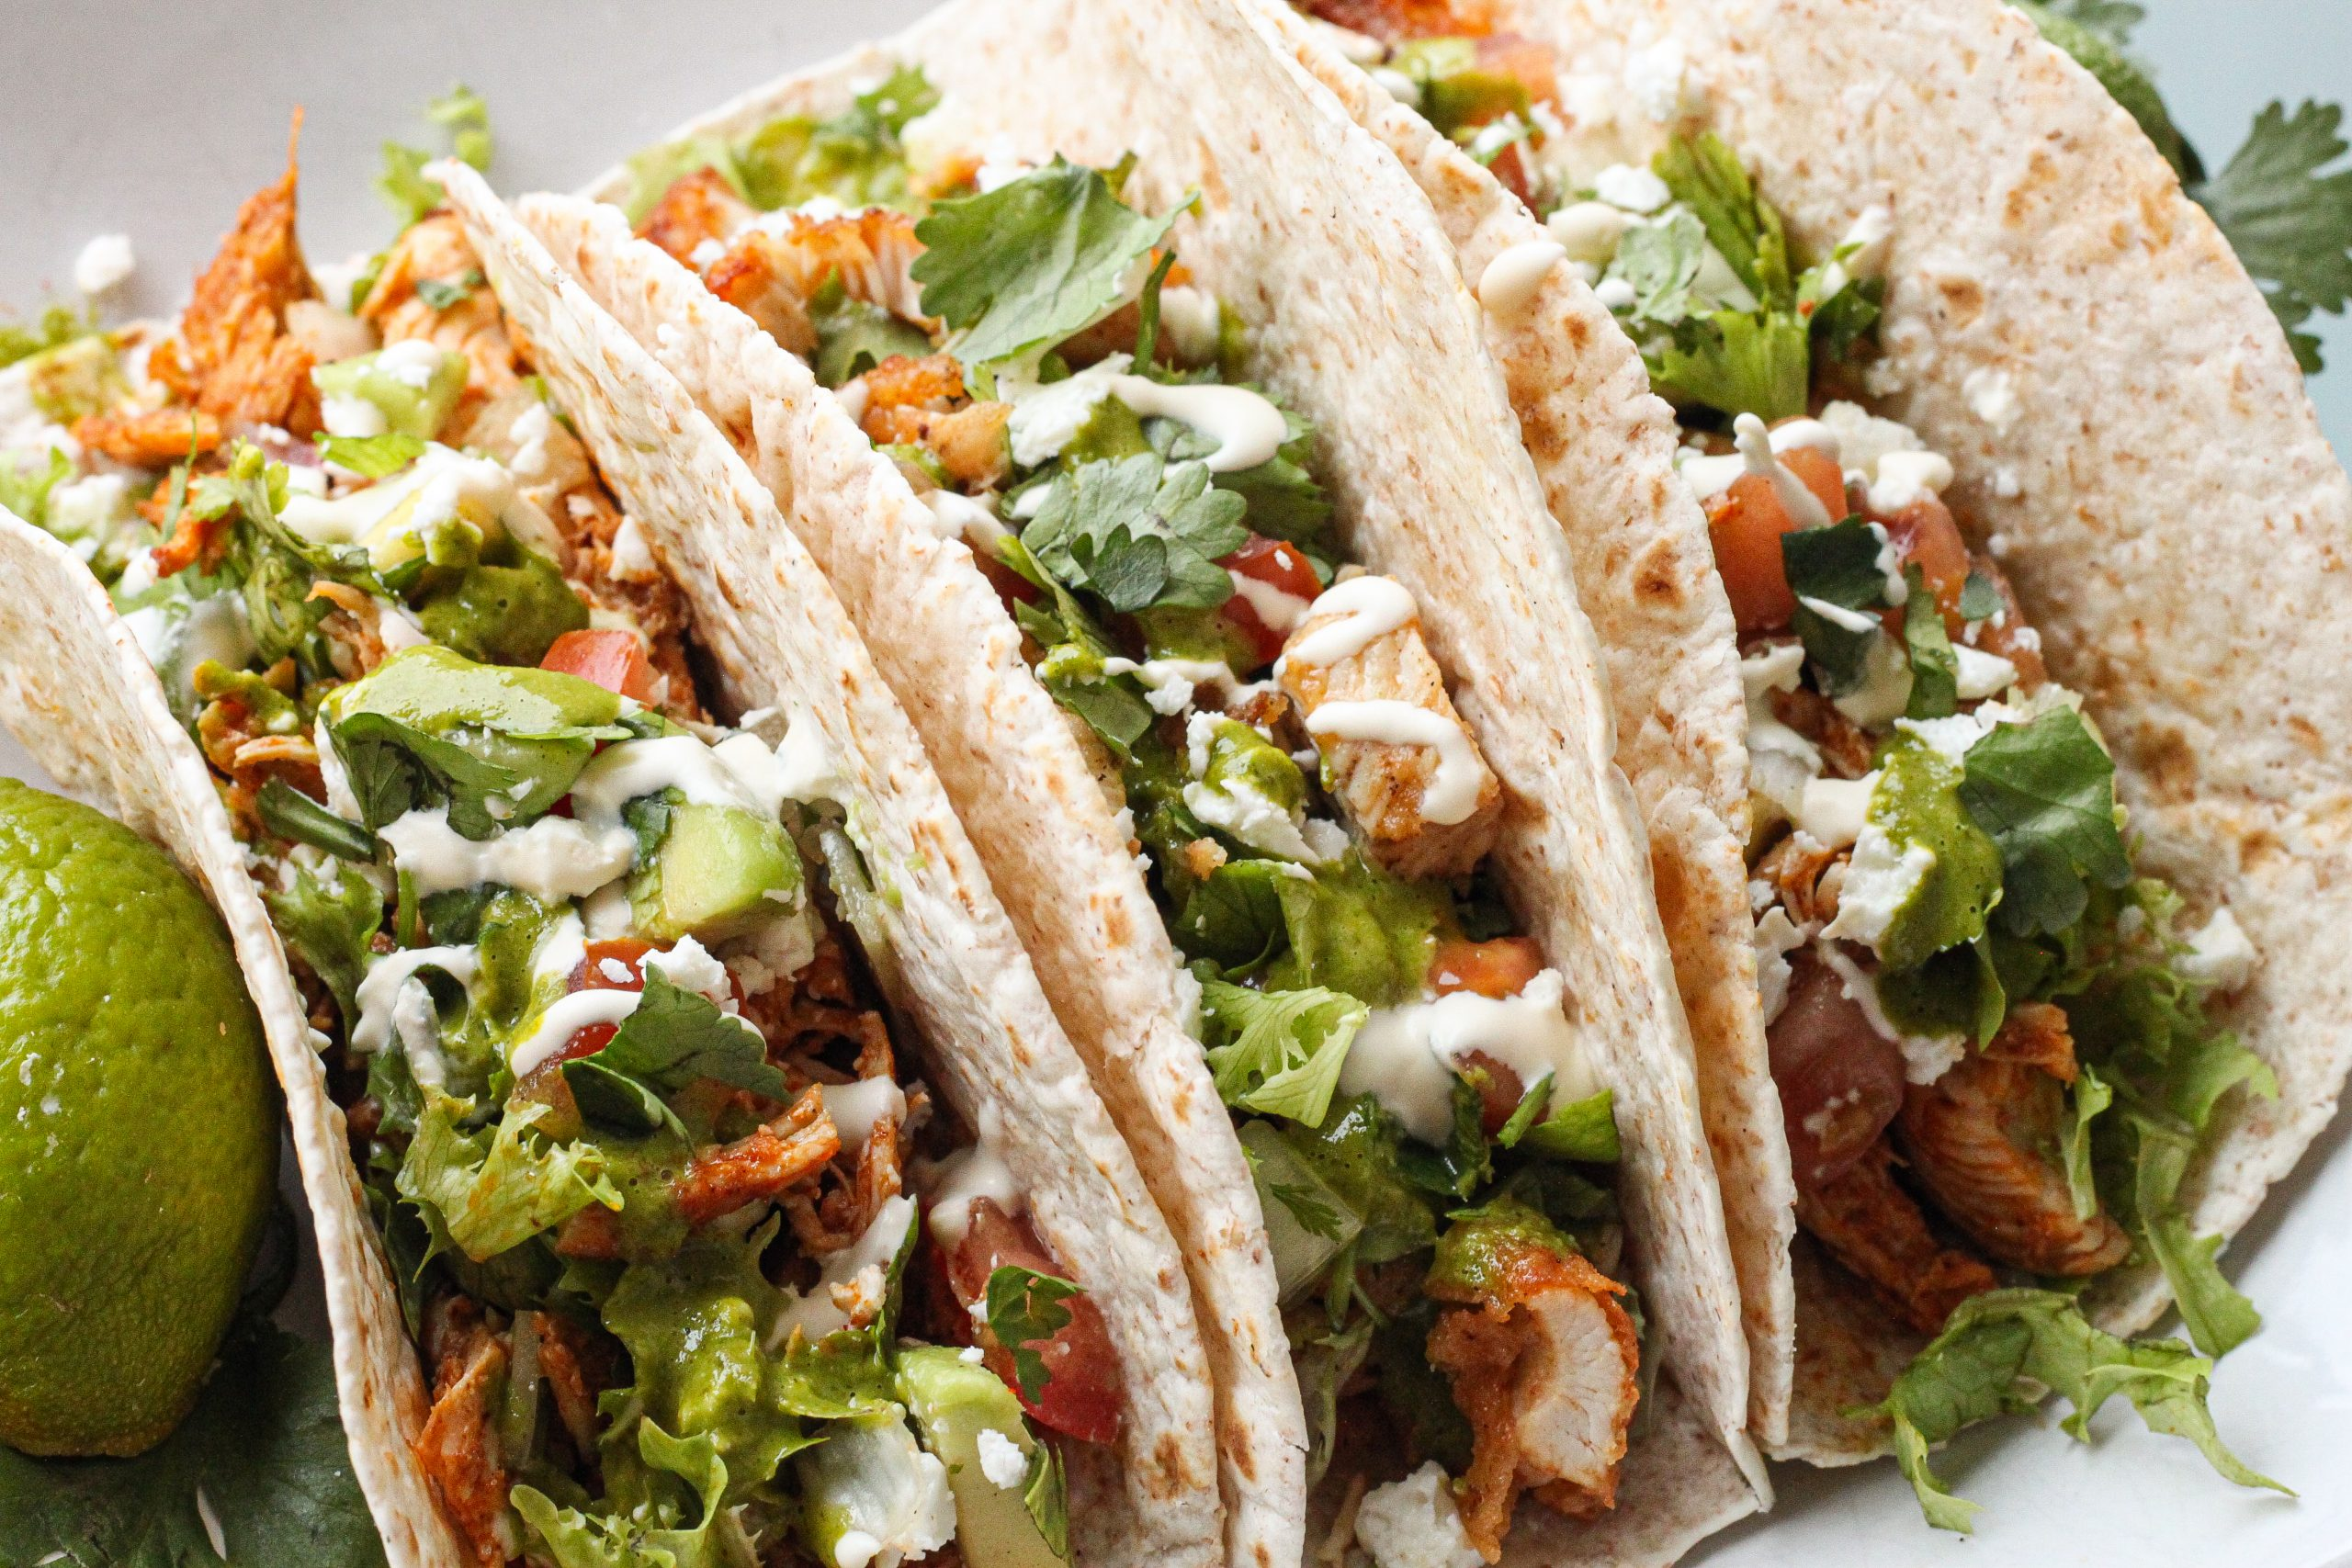 Awesome Chicken tacos: Taco Tuesday